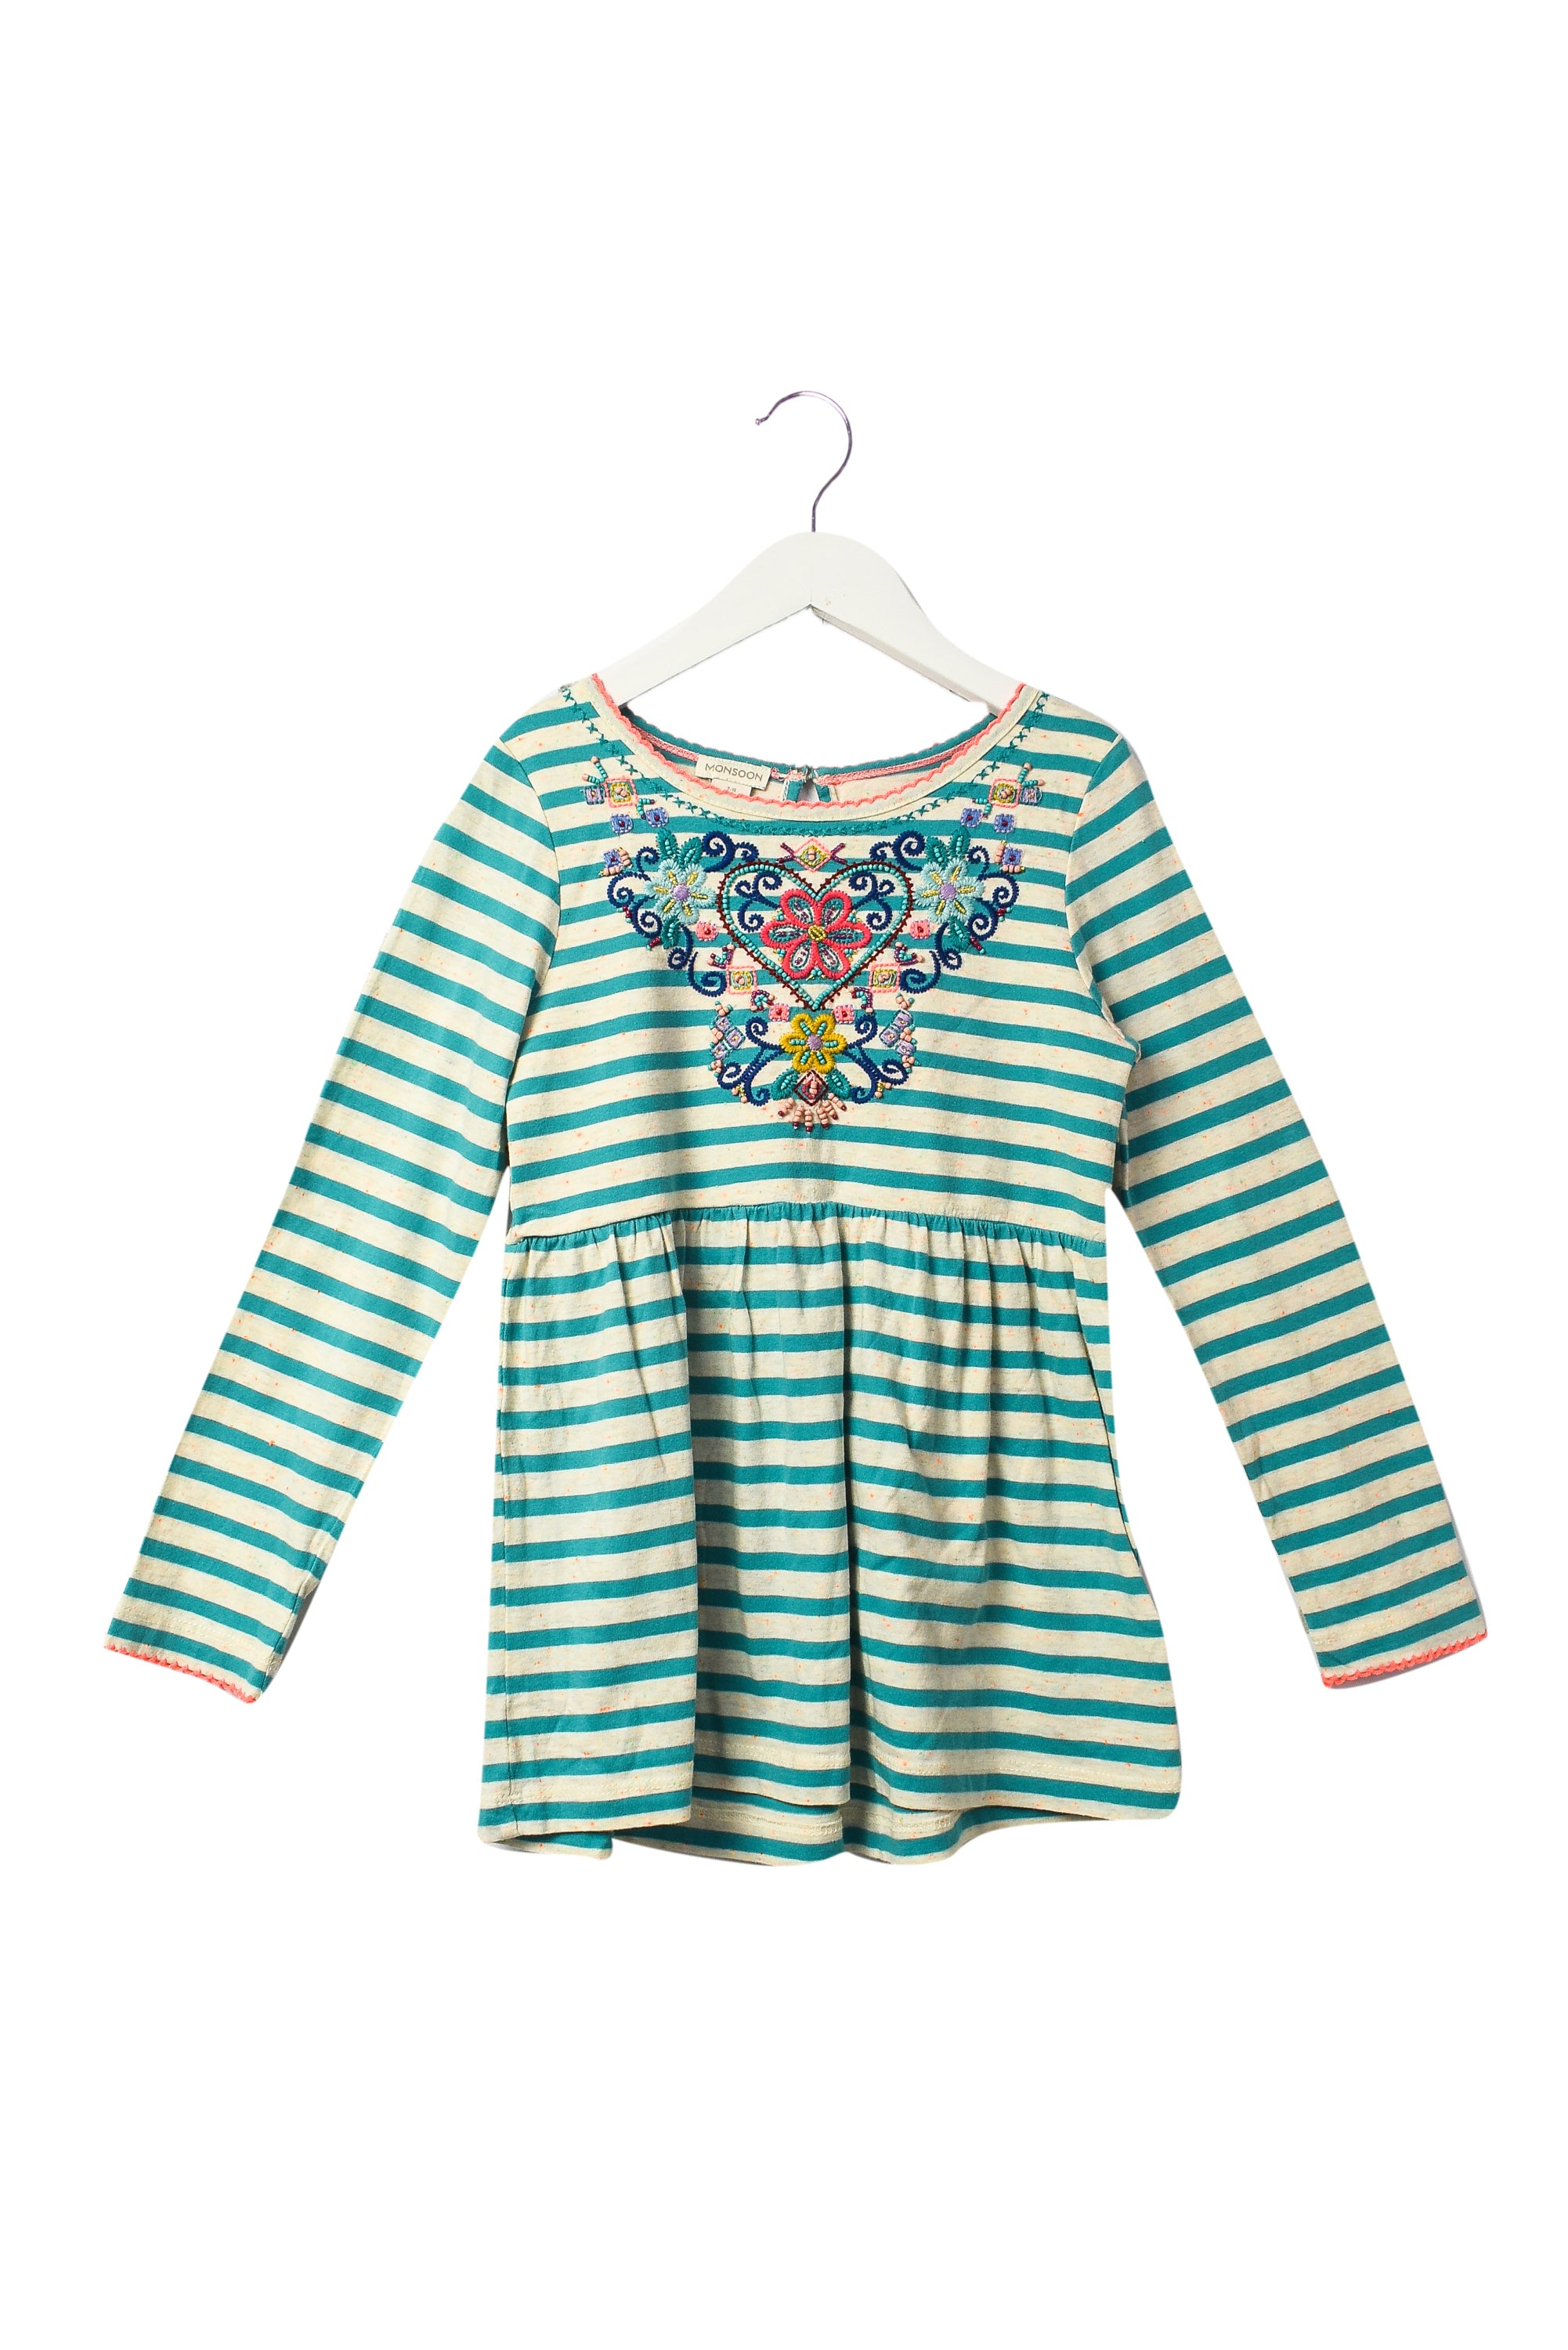 10044424 Monsoon Kids~Long Sleeve Top 7-8 at Retykle